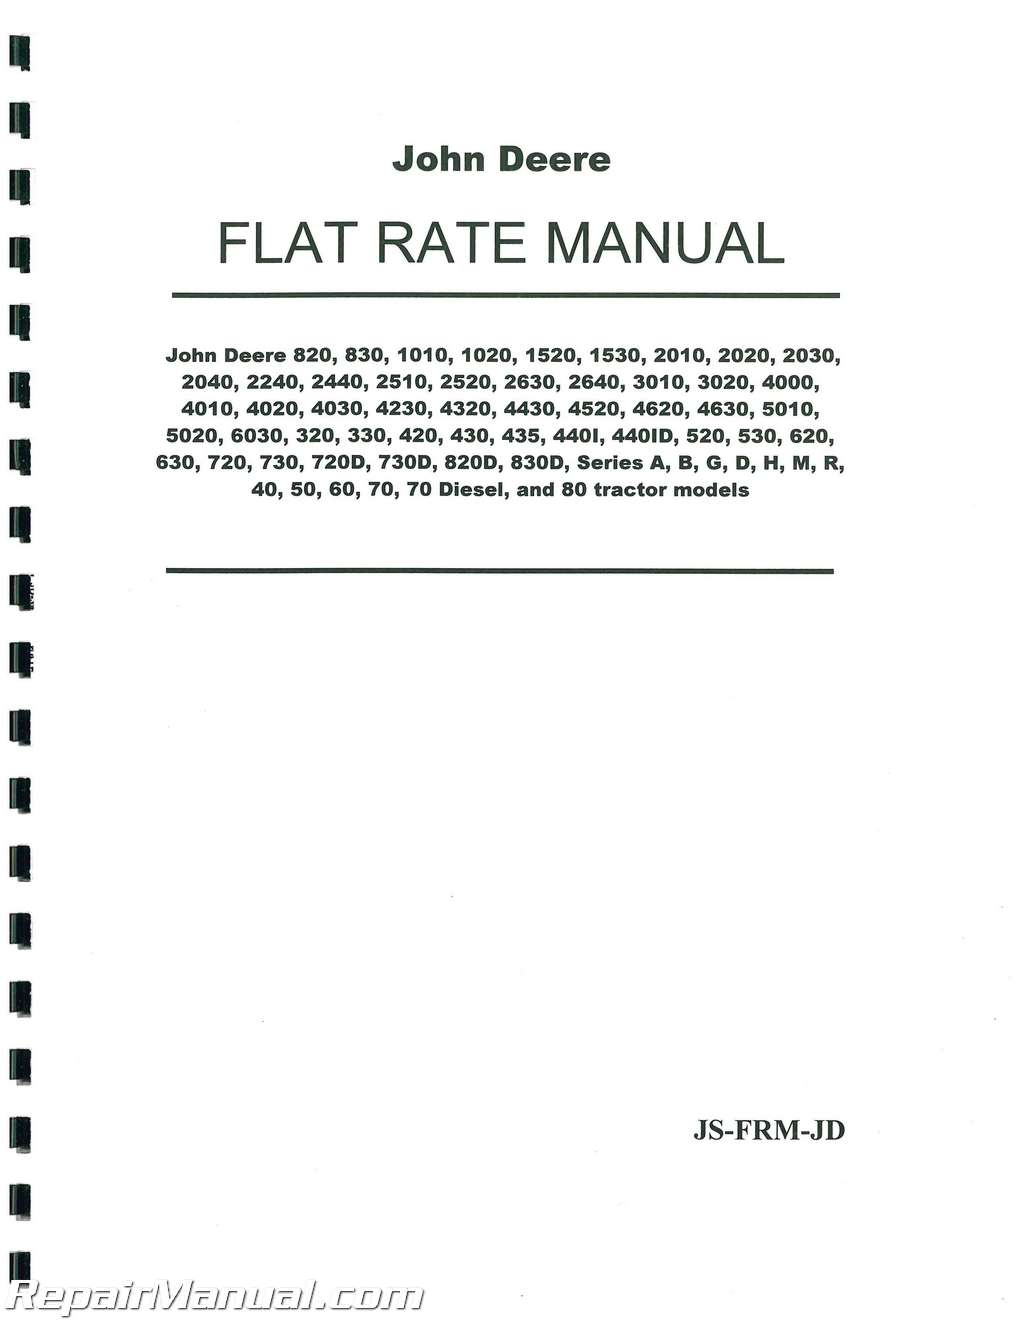 John Deere Tractor Flat Rate Manual_001?quality\=80\&strip\=all diagrams 12361600 john deere delco radio wiring diagram 1980 gm john deere tractor radio wiring diagram at aneh.co